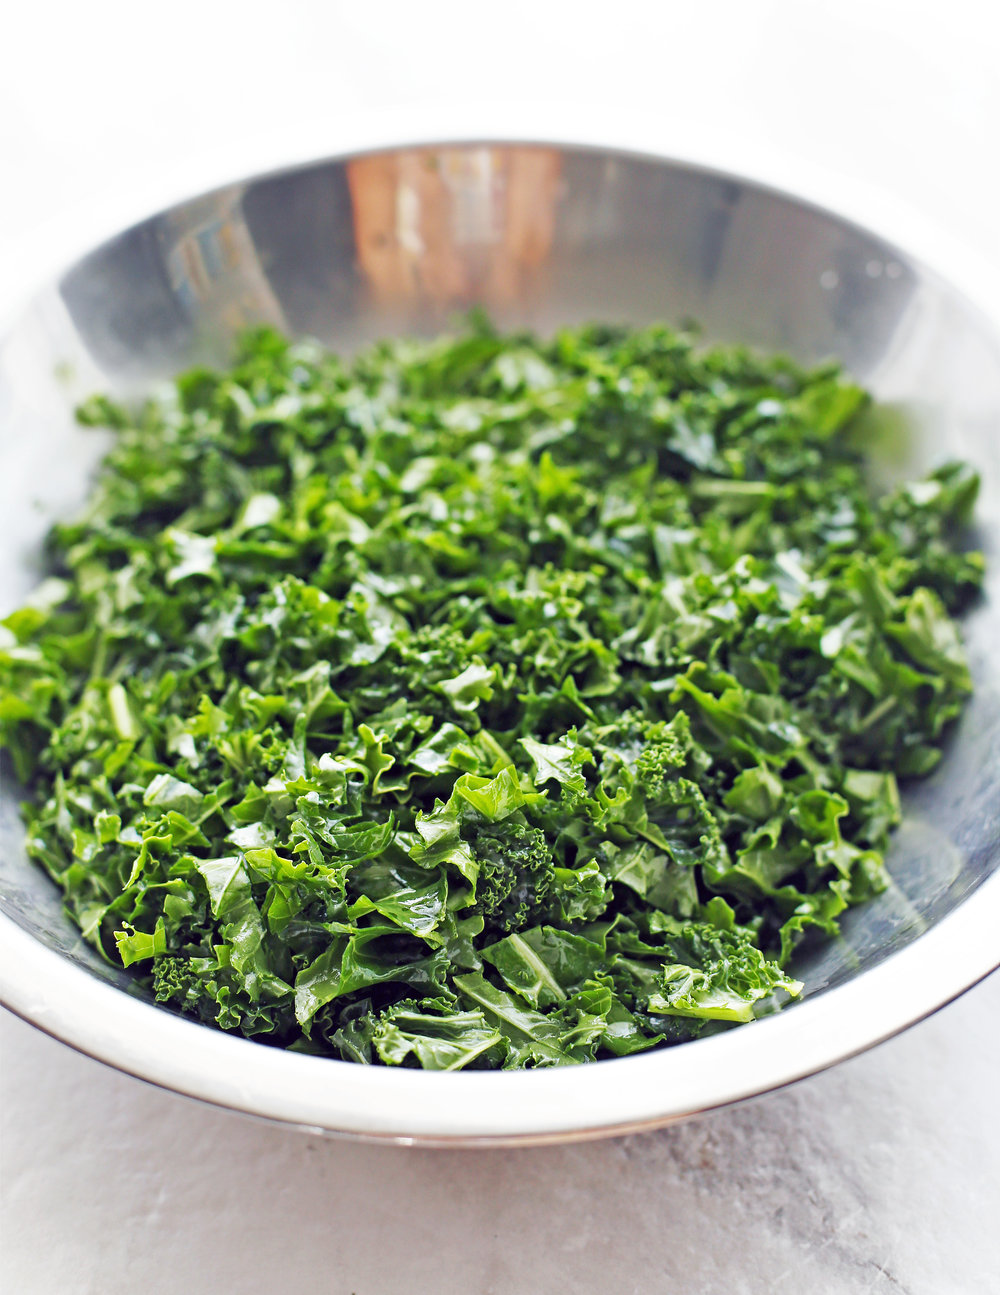 Chopped green curly kale in a metal bowl.